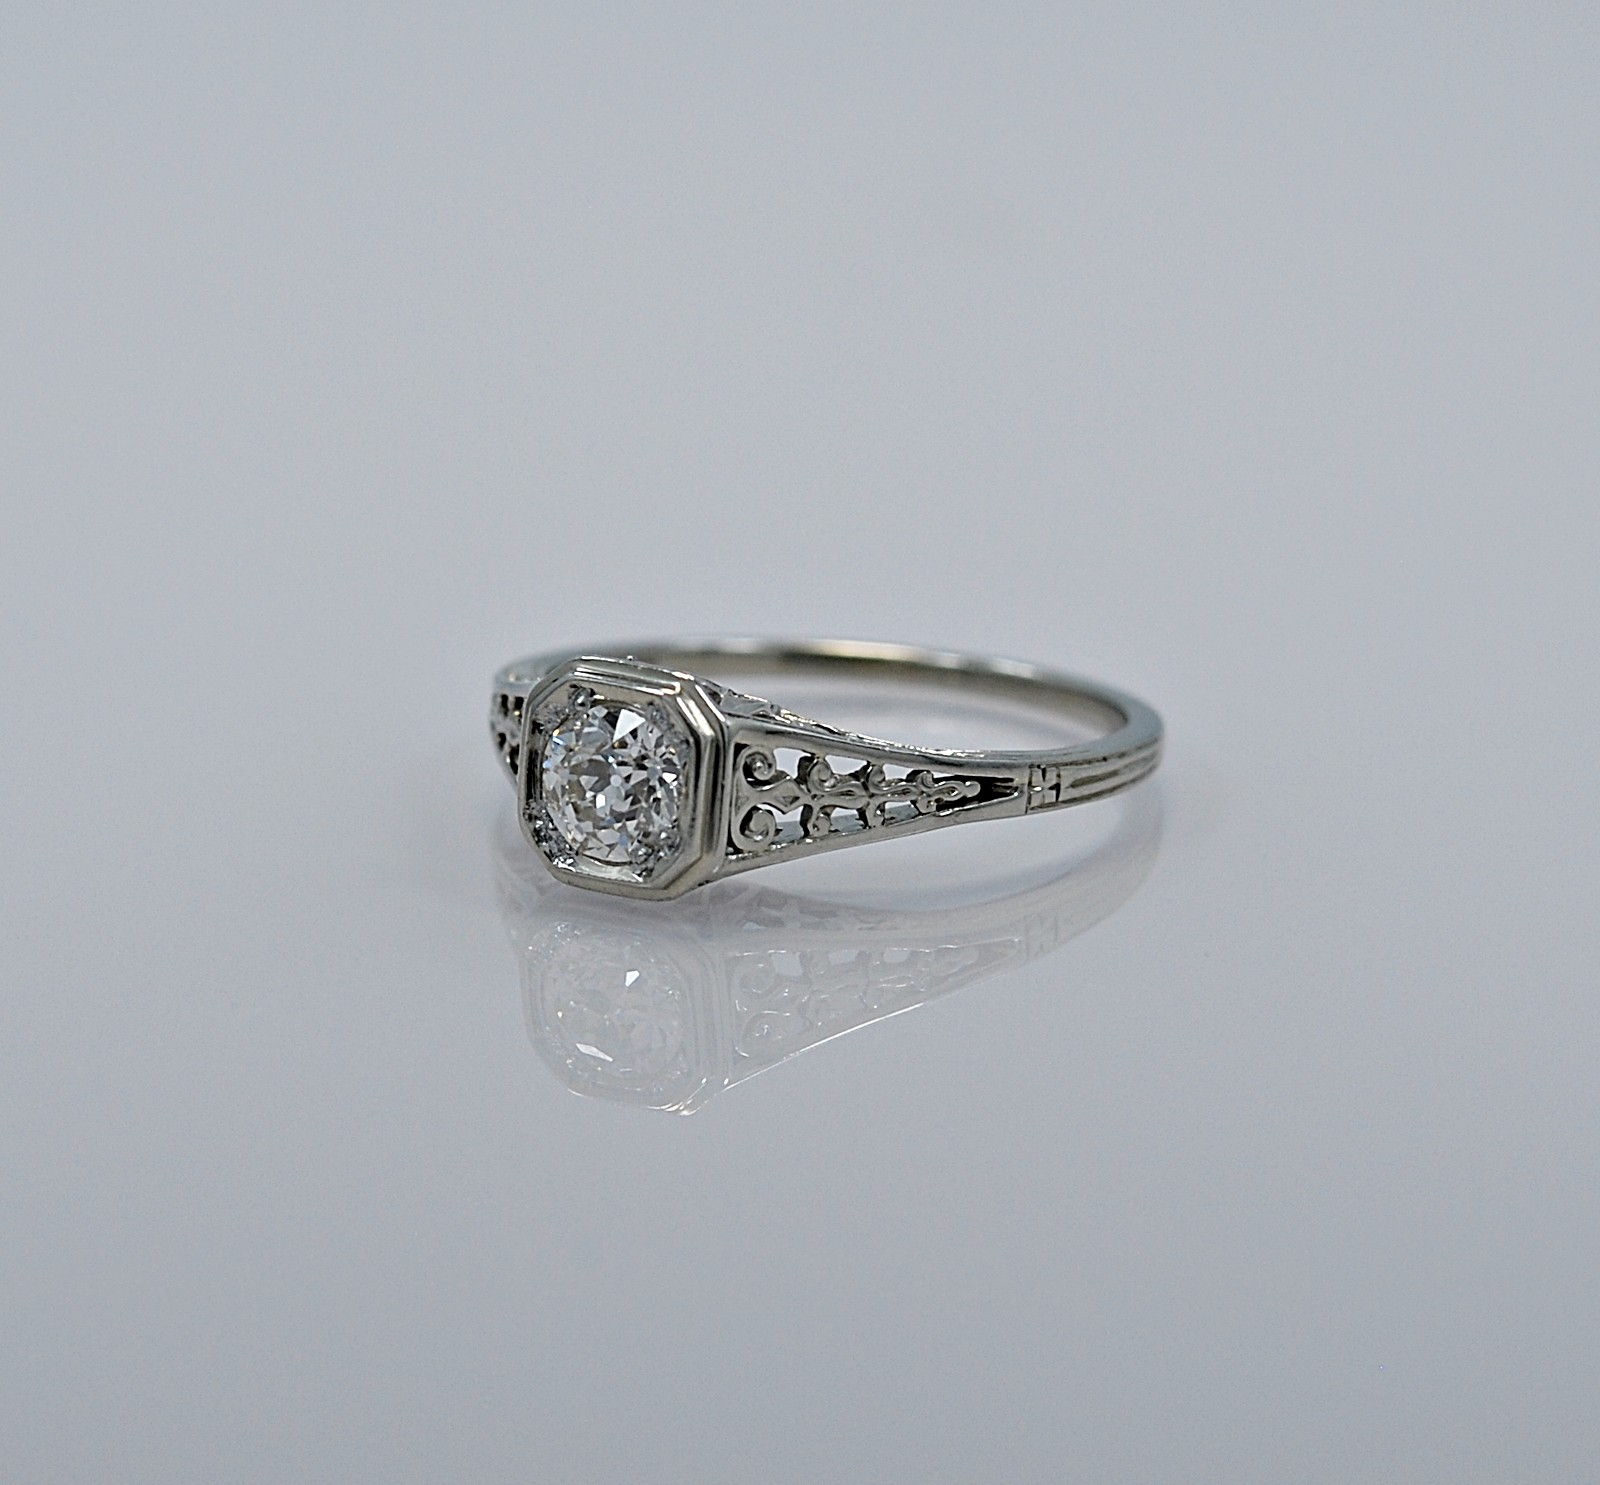 45ct-diamond-18k-white-gold-art-deco-engagement-ring-lambert-head